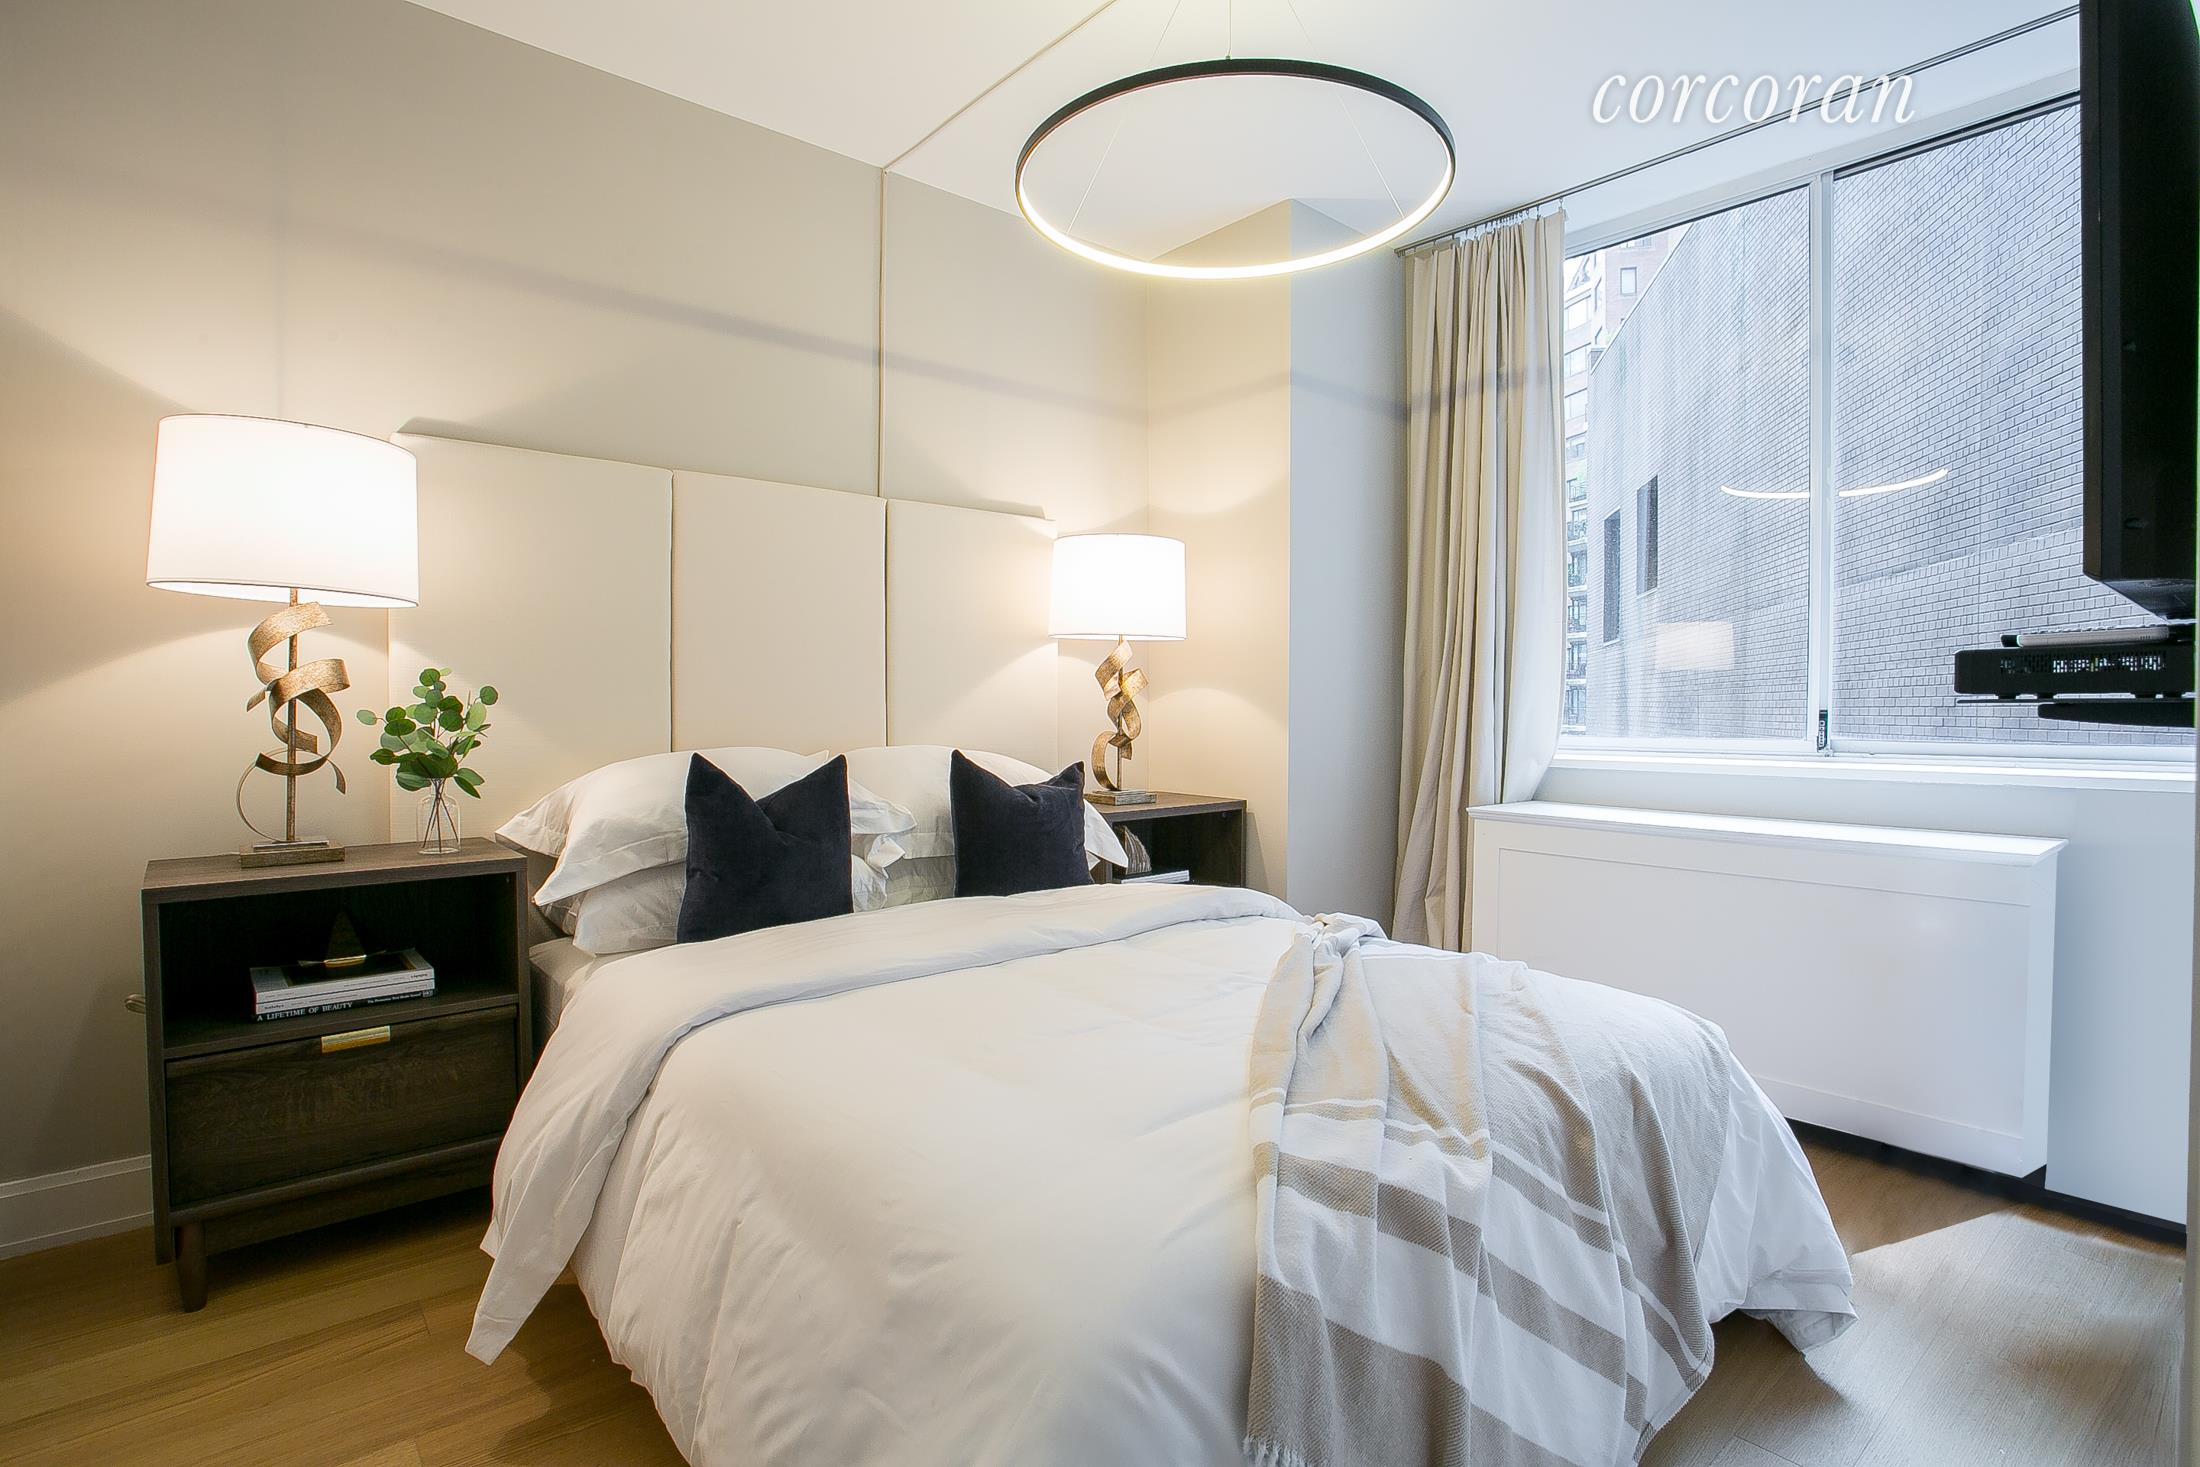 420 East 54th Street, Apt 513, Manhattan, New York 10022